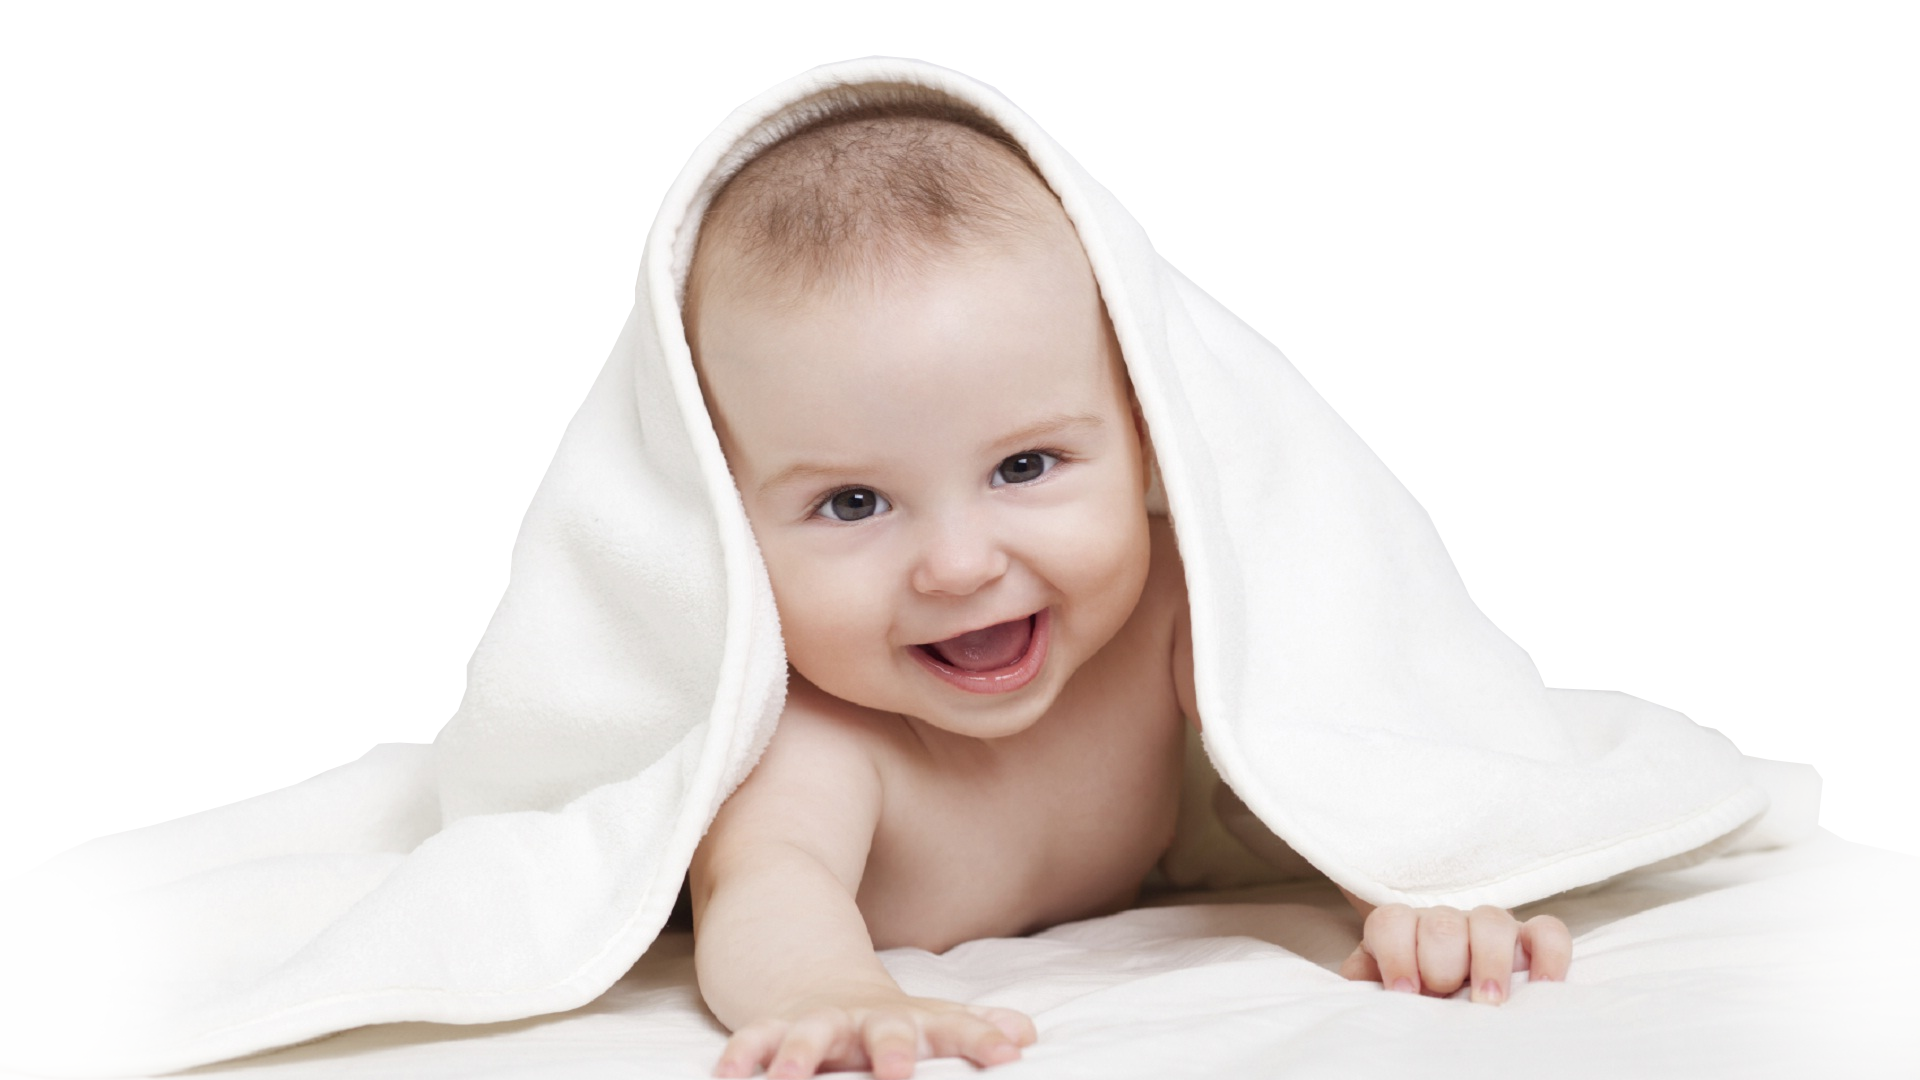 Baby HD PNG - 116780